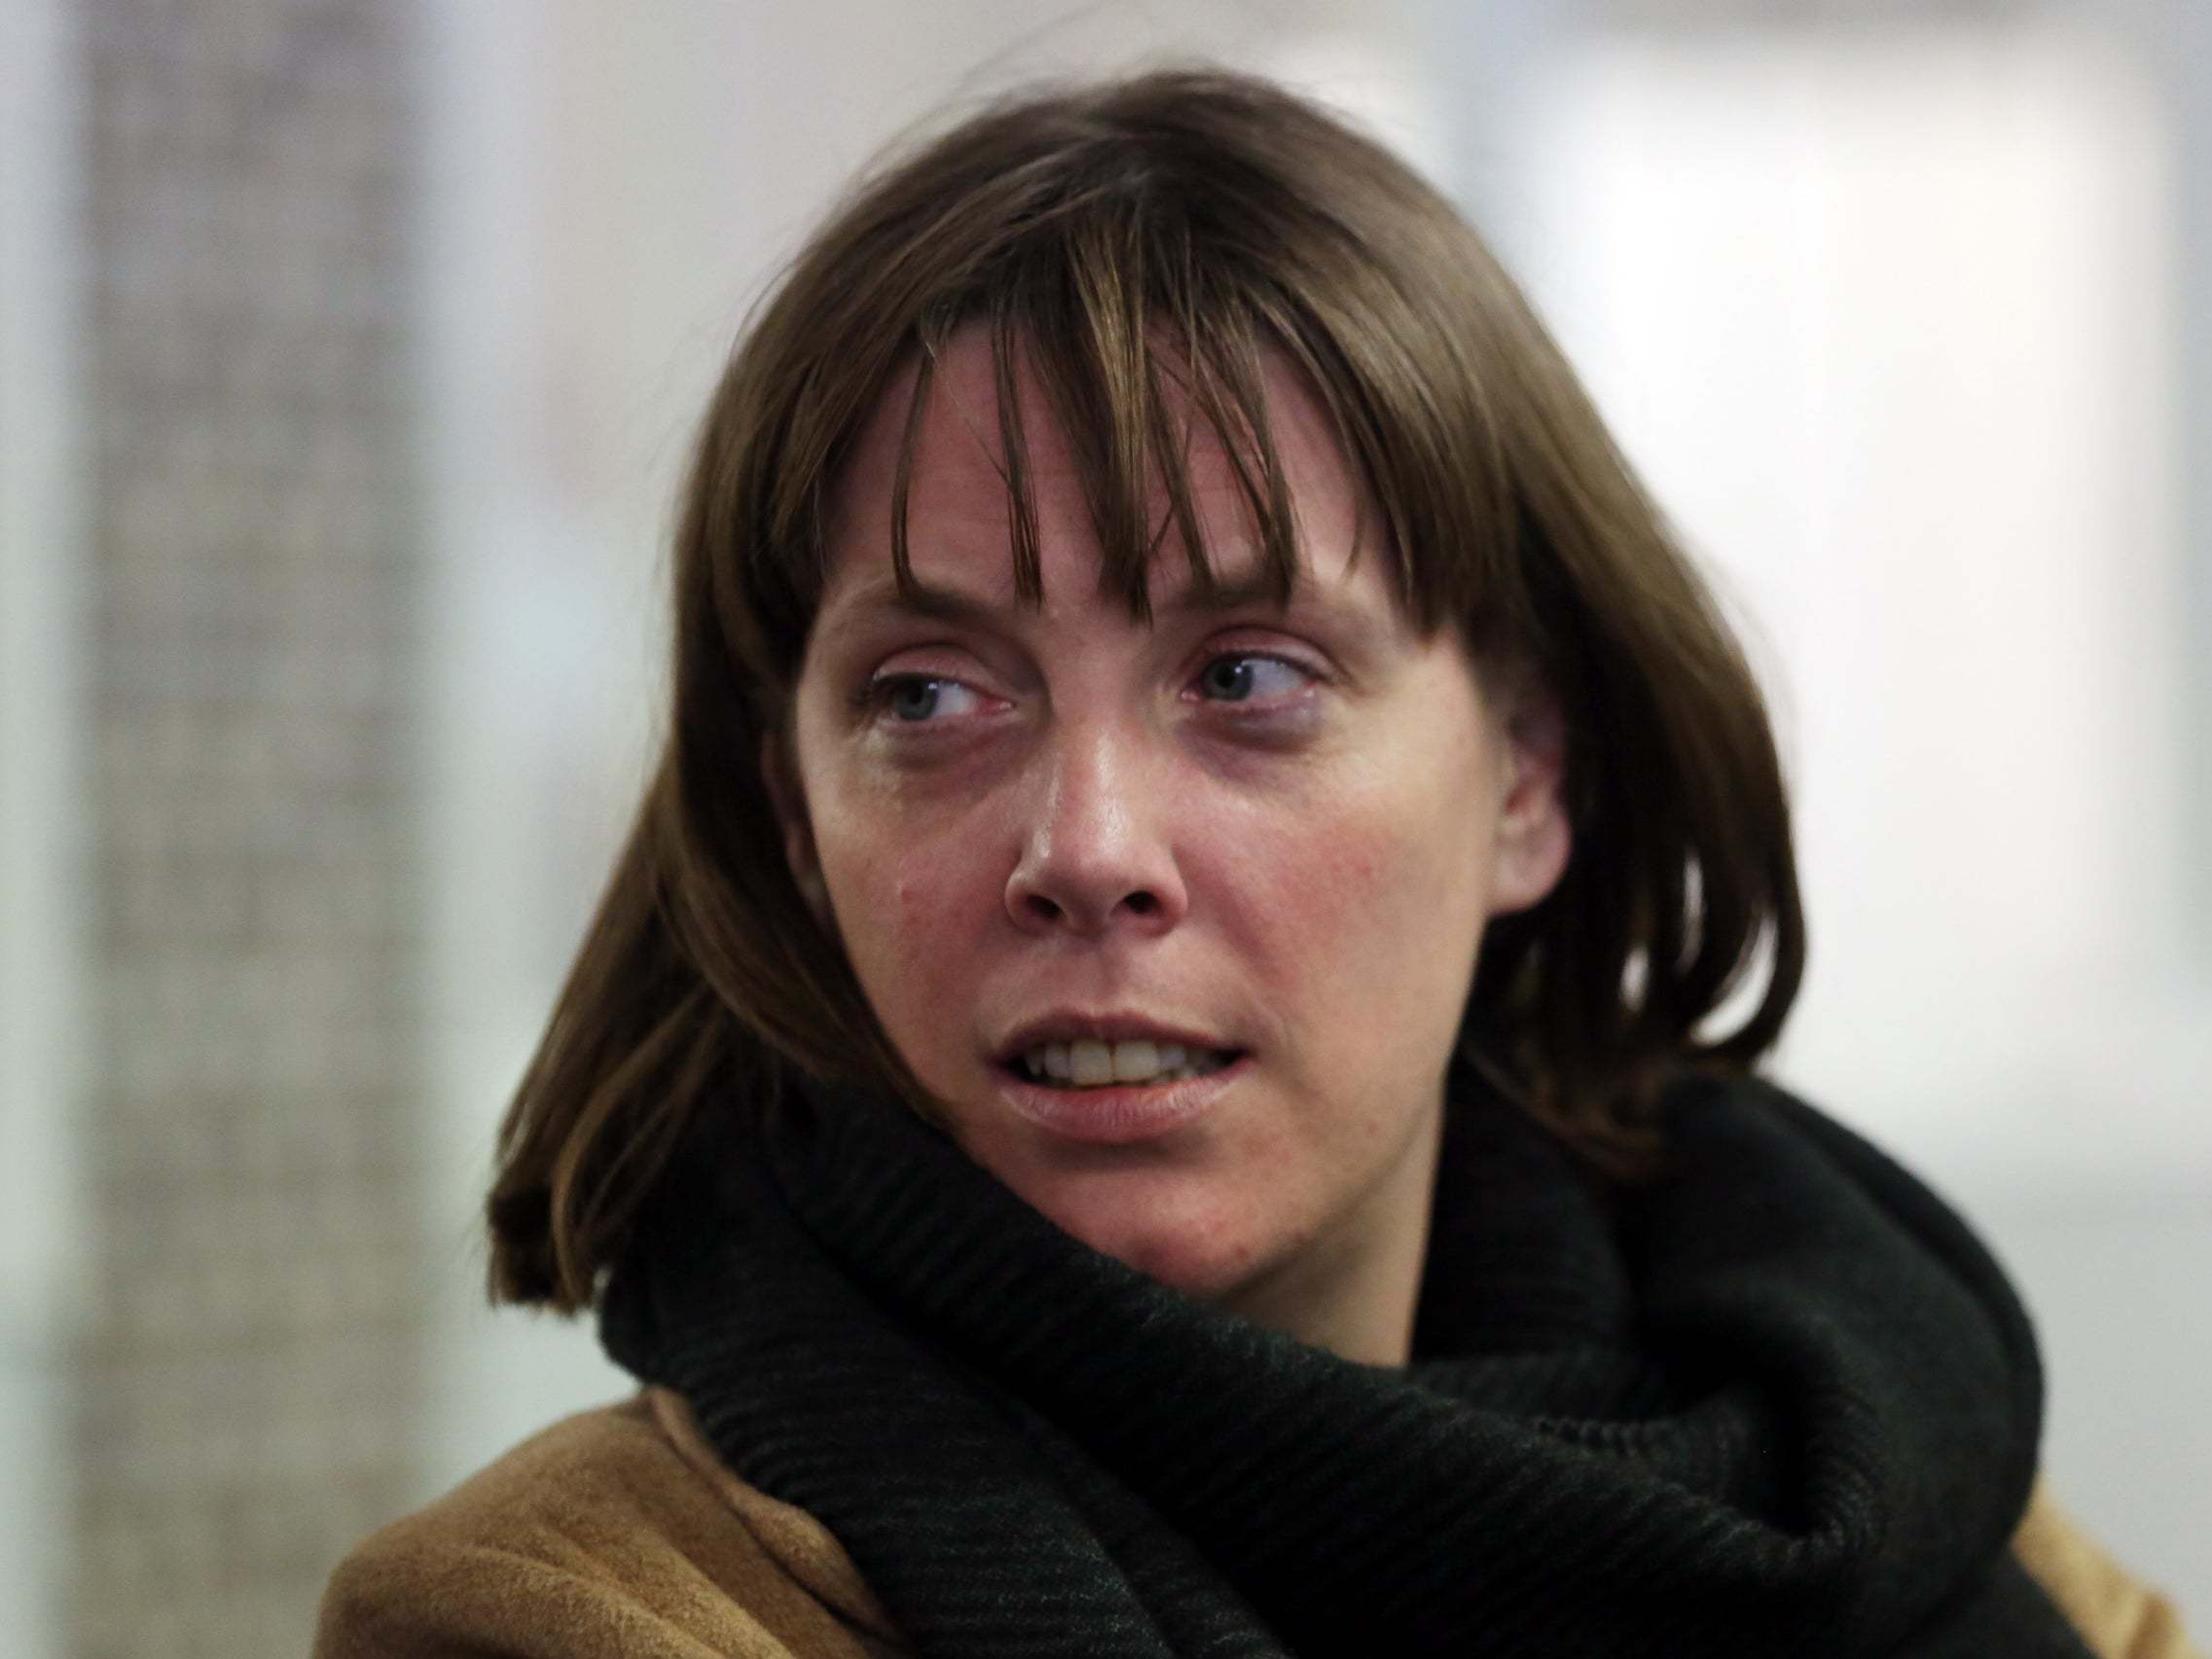 Jess Phillips accidentally made clear why Labour is doomed